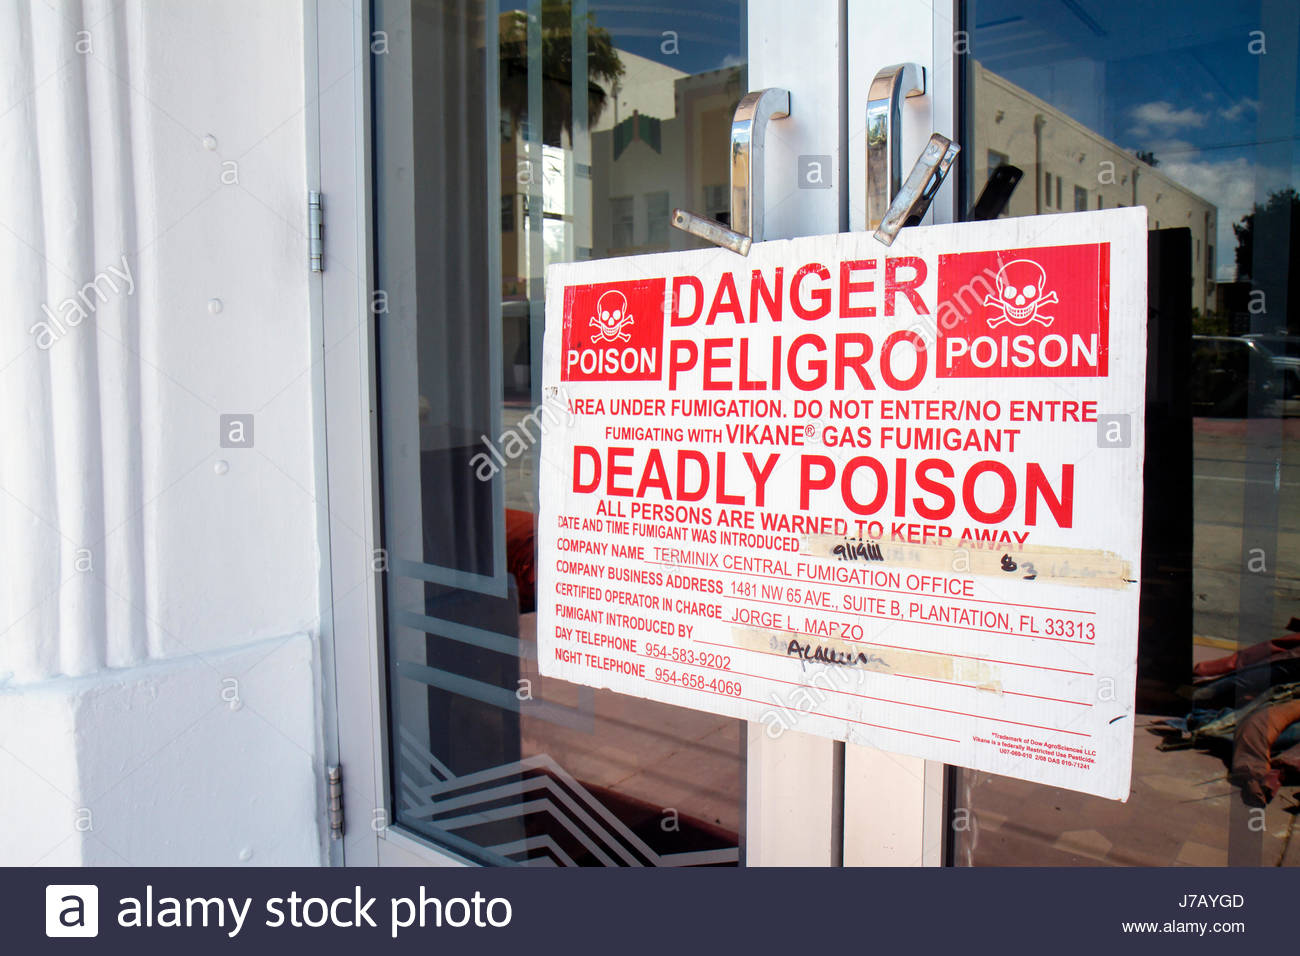 Miami Beach Florida Ocean Drive Savoy Hotel sign deadly poison warning Spanish language bilingual fumigation Vikane - Stock Image